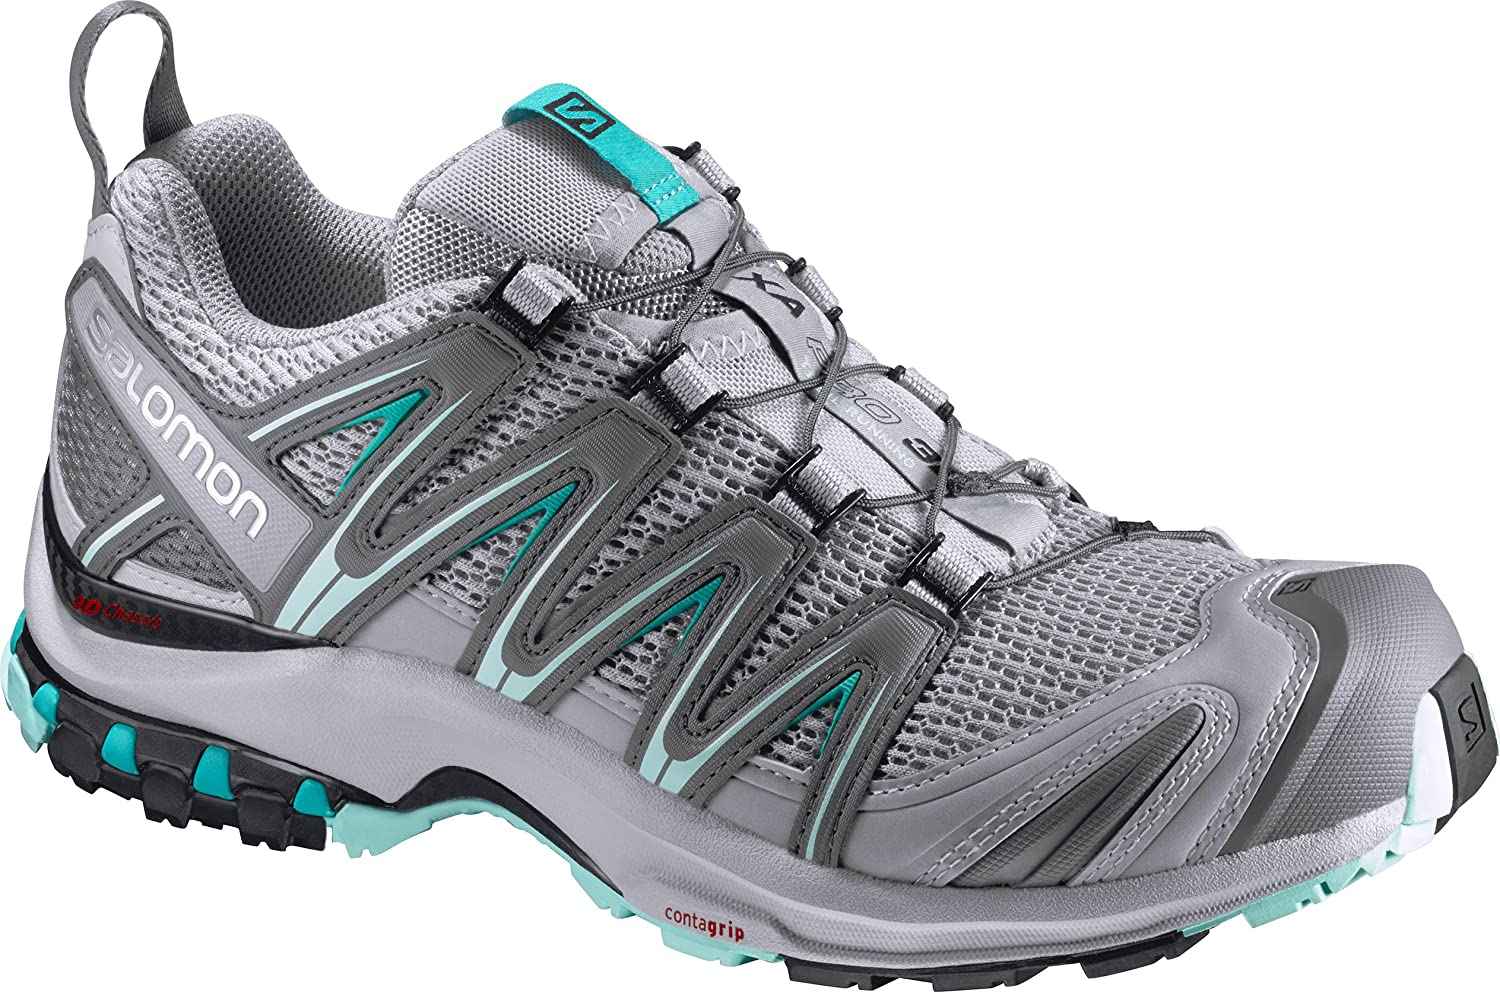 Salomon Women's Xa Pro 3D W Trail Running Shoe B01HD2PB1A 11 B(M) US|Quarry